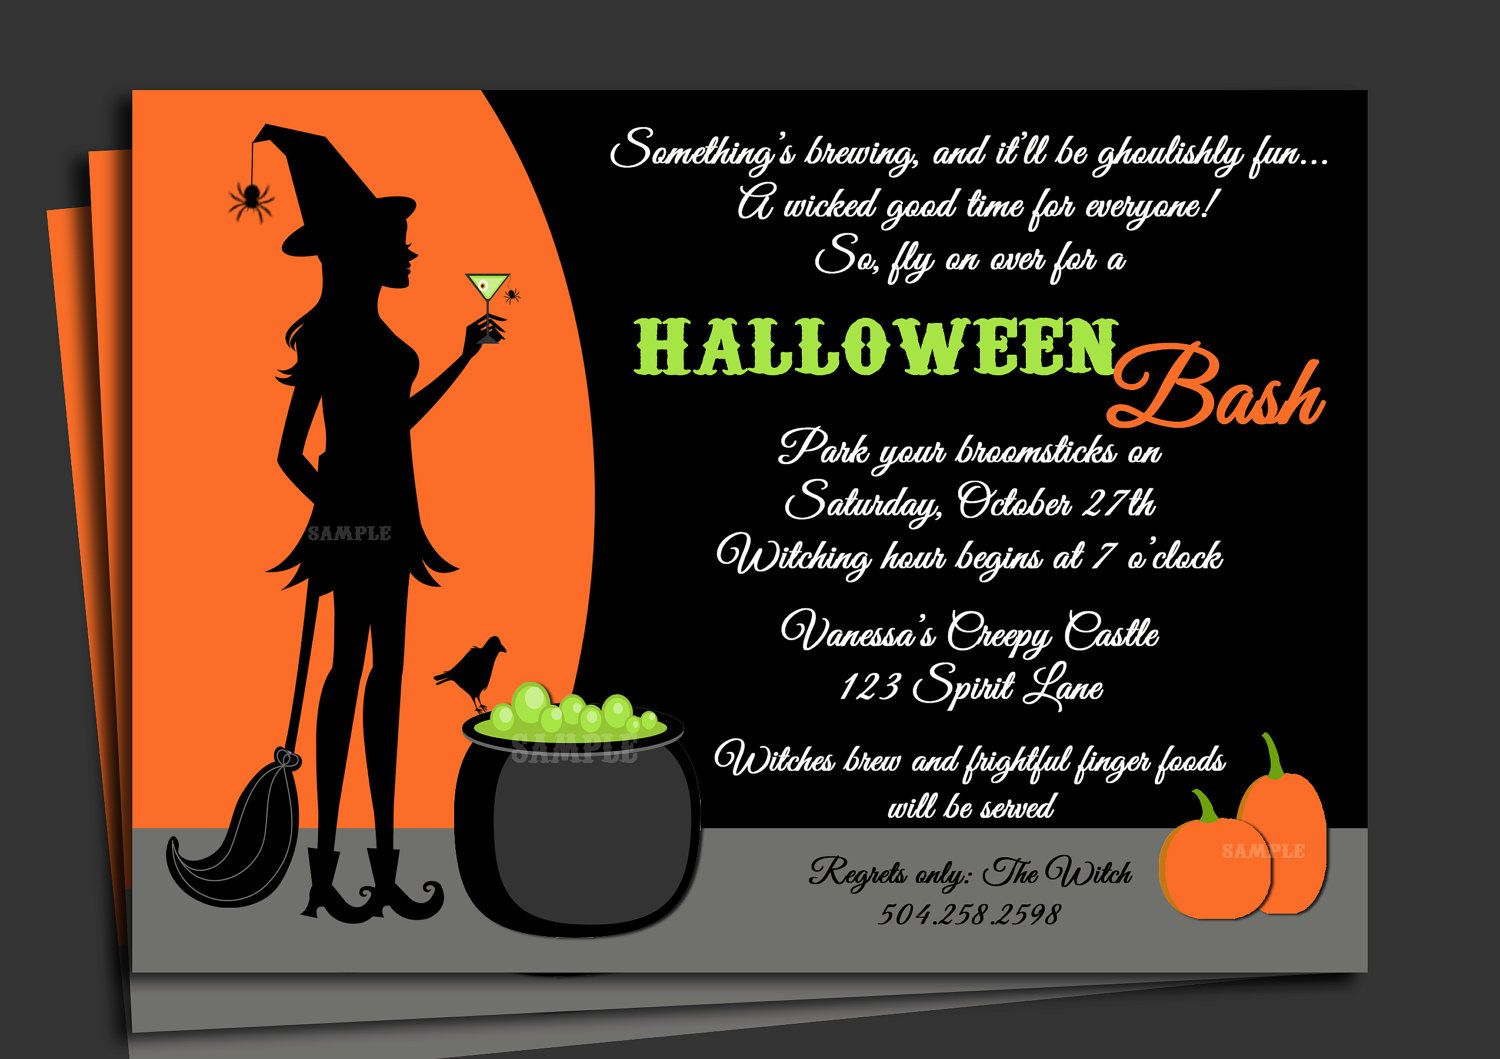 Crazy Creative Halloween Party Invitation Wording Idea with Orange ...